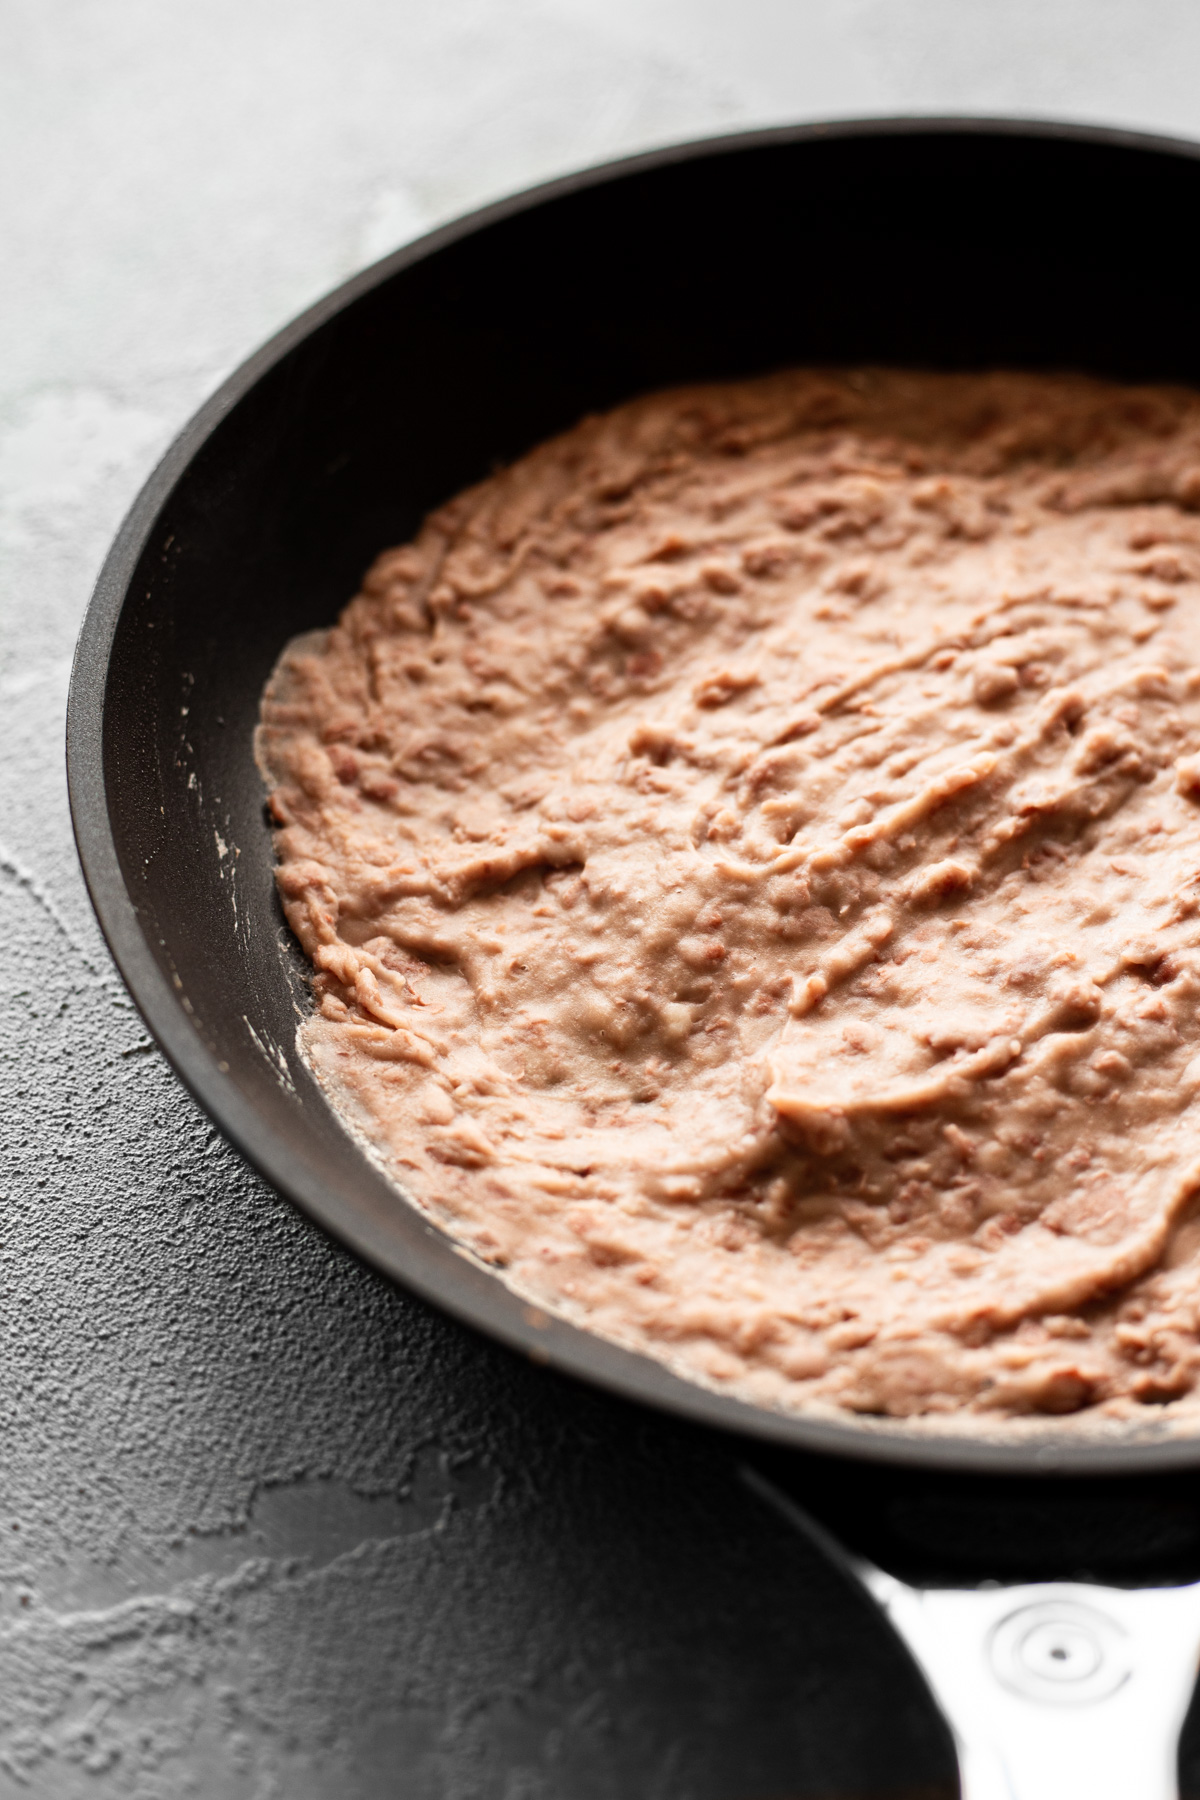 skillet filled with freshly mashed pinto beans for bean and beef tostadas